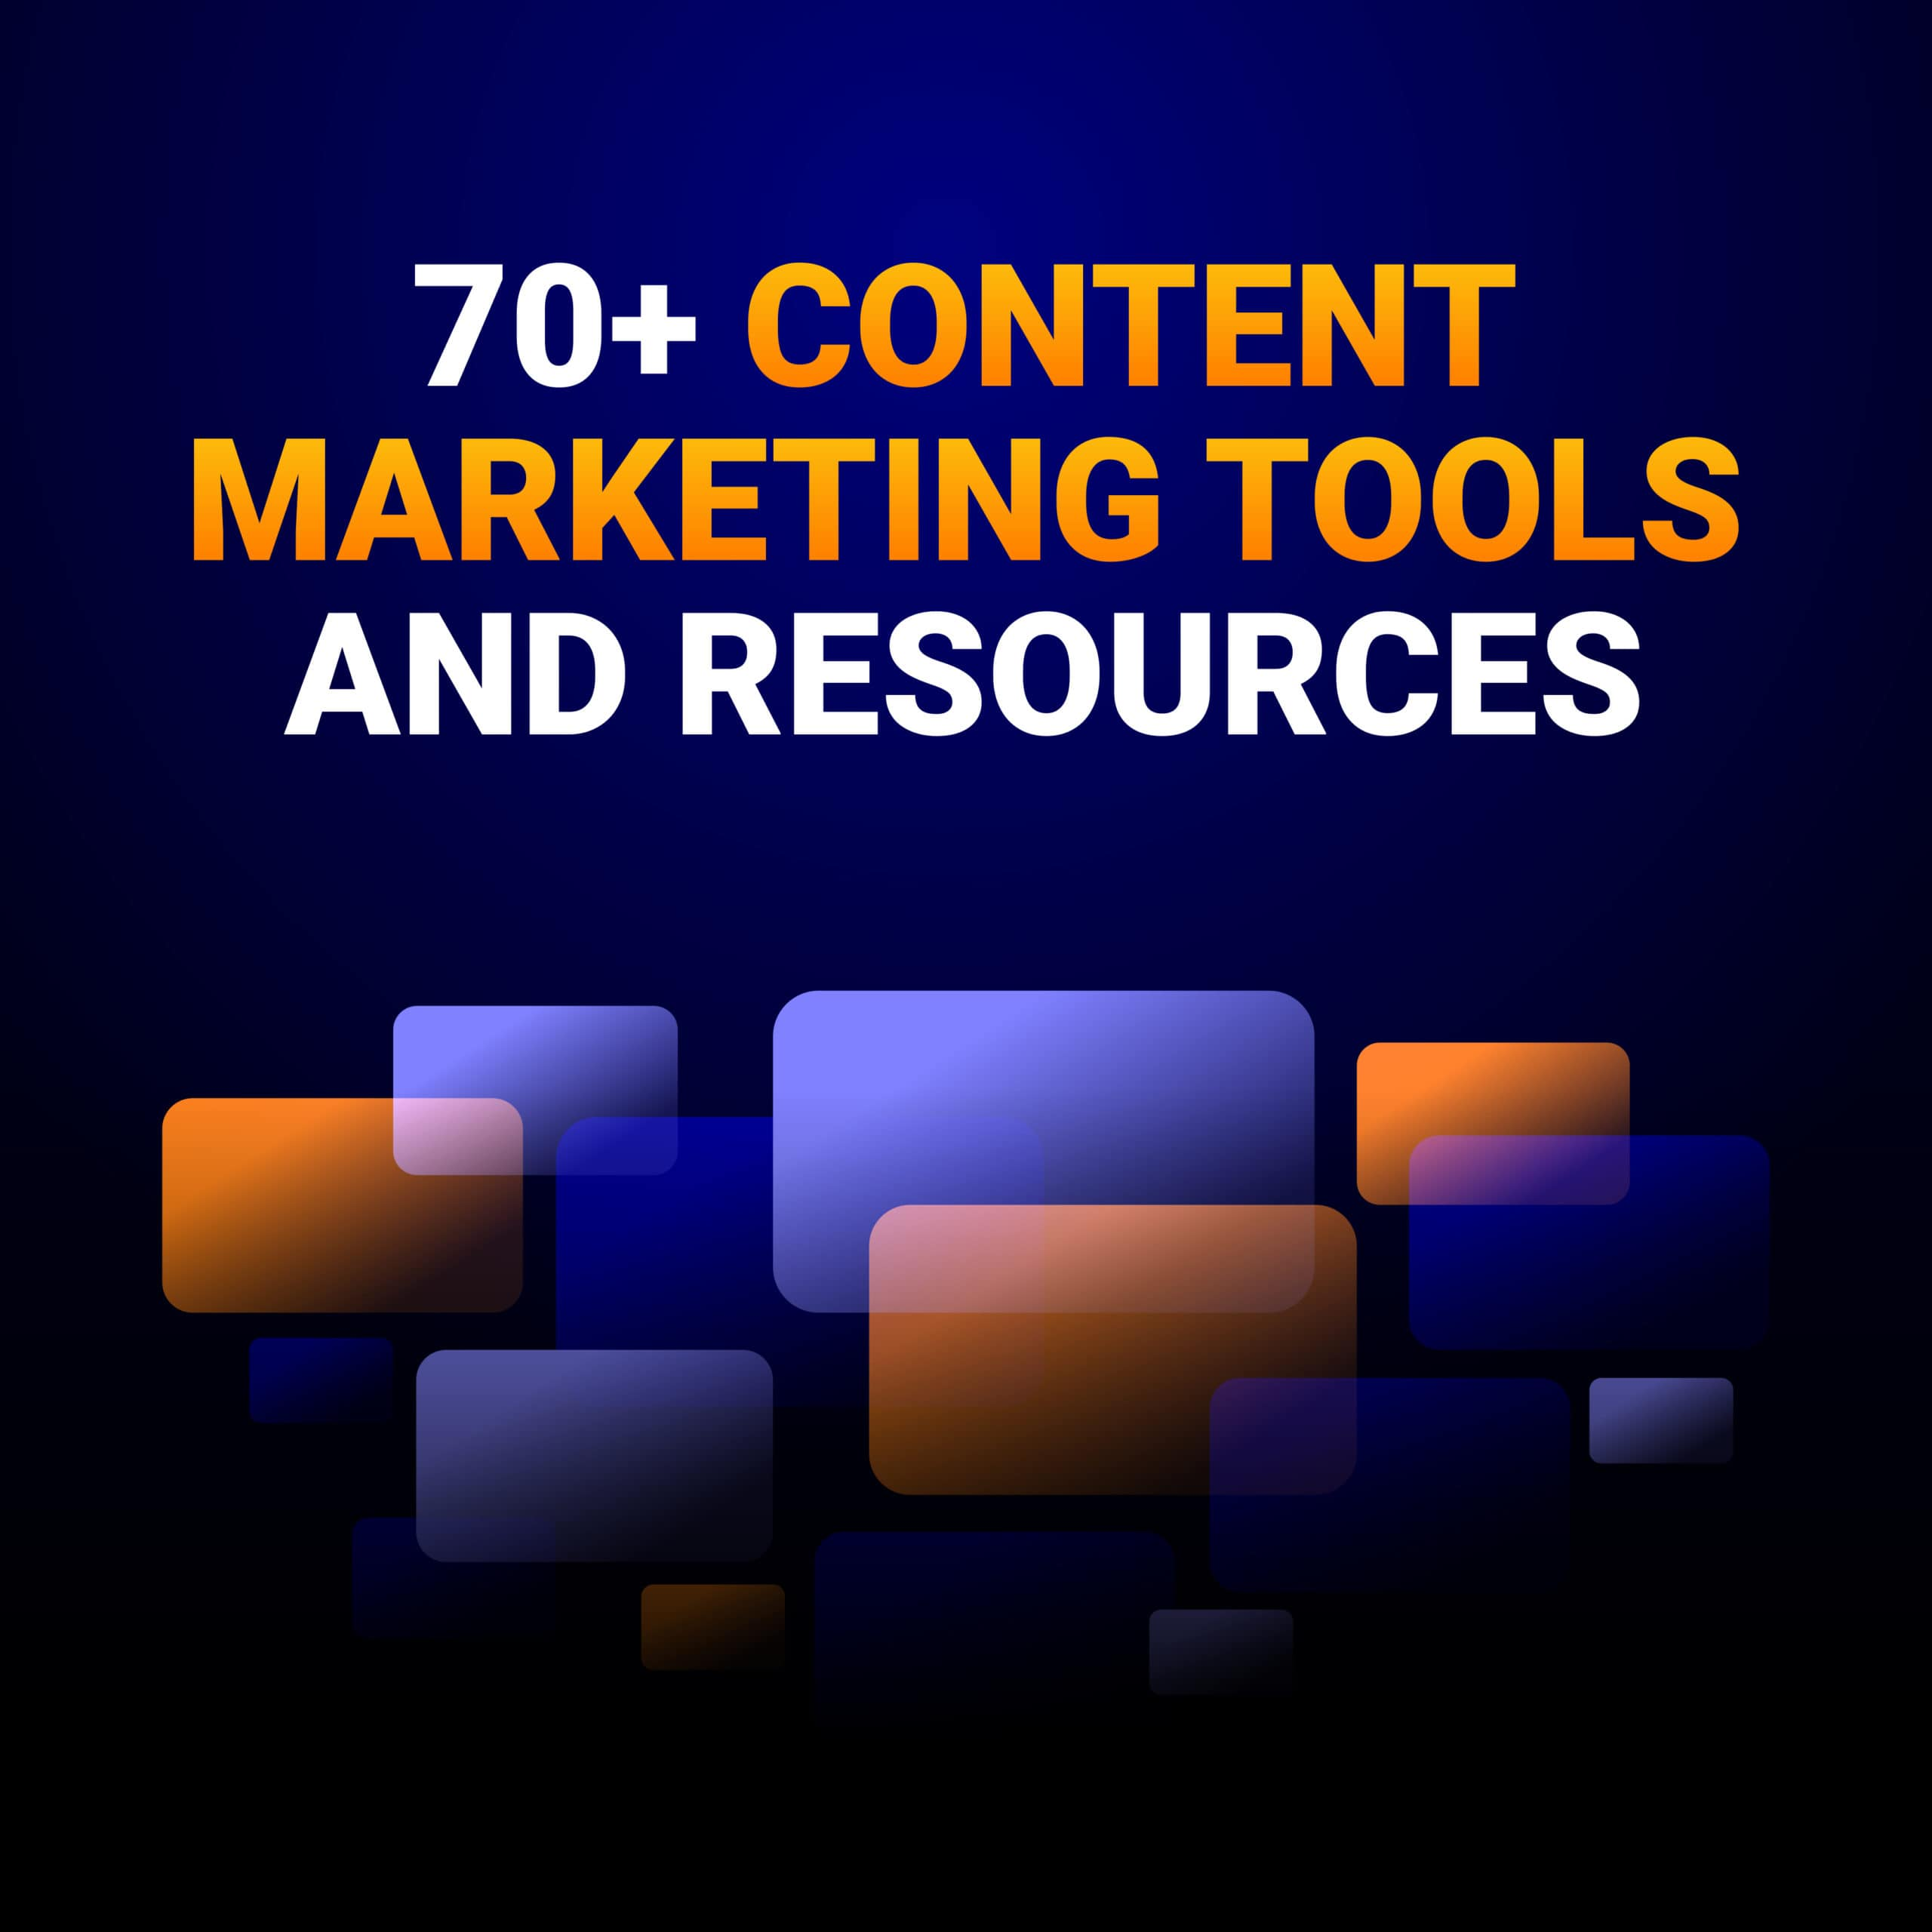 Content Marketing Tools featured image